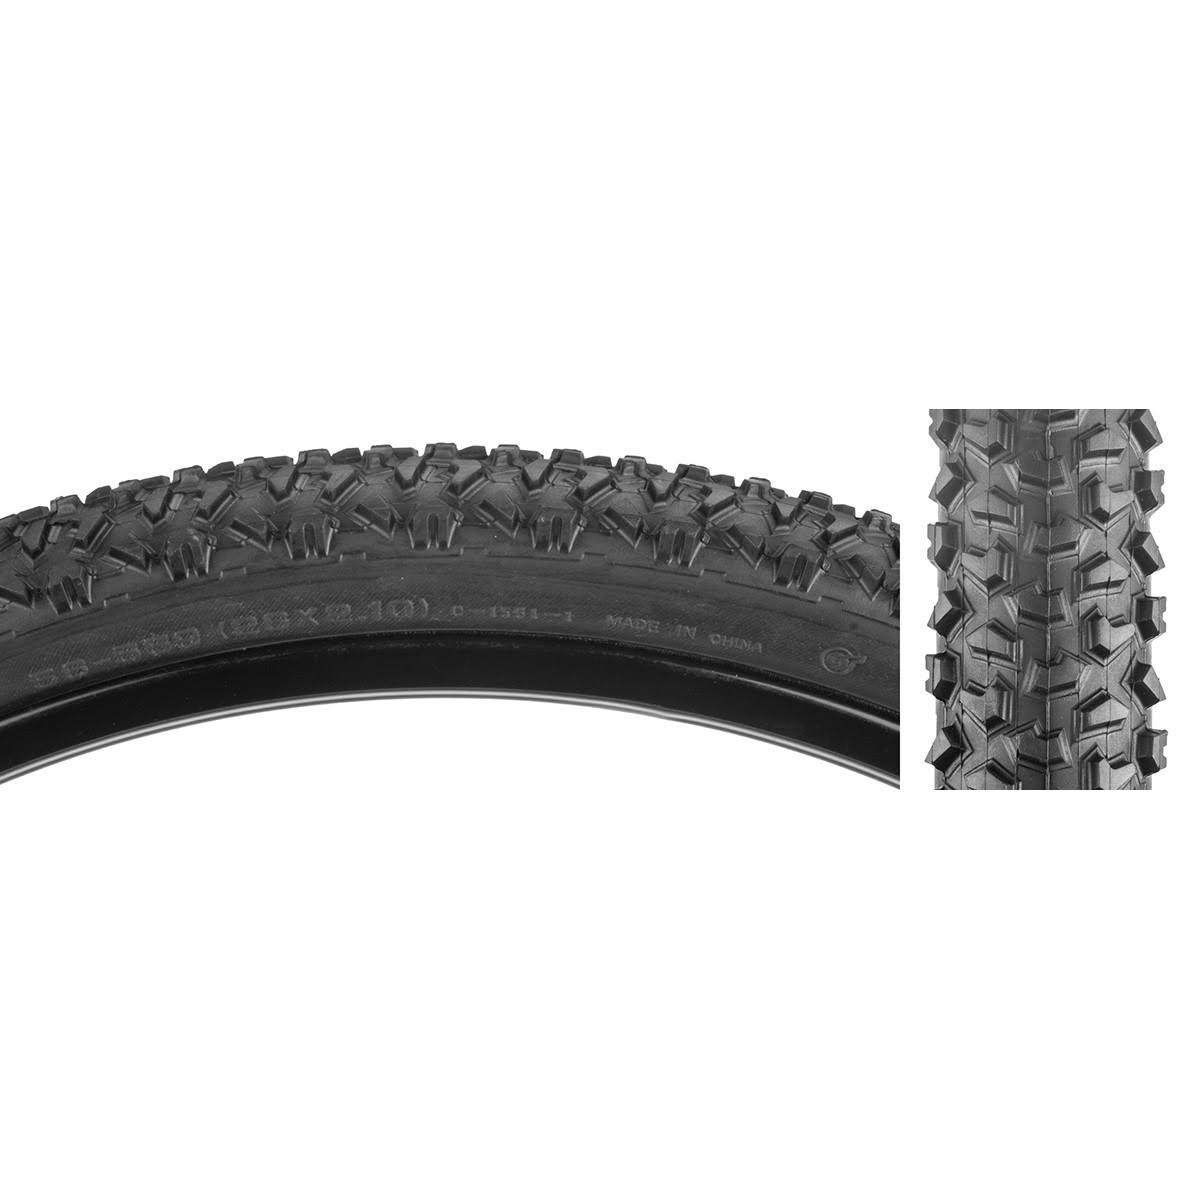 "Sunlite CST1561 Cheyenne Bike Tire - 26""x2.1"", Black"